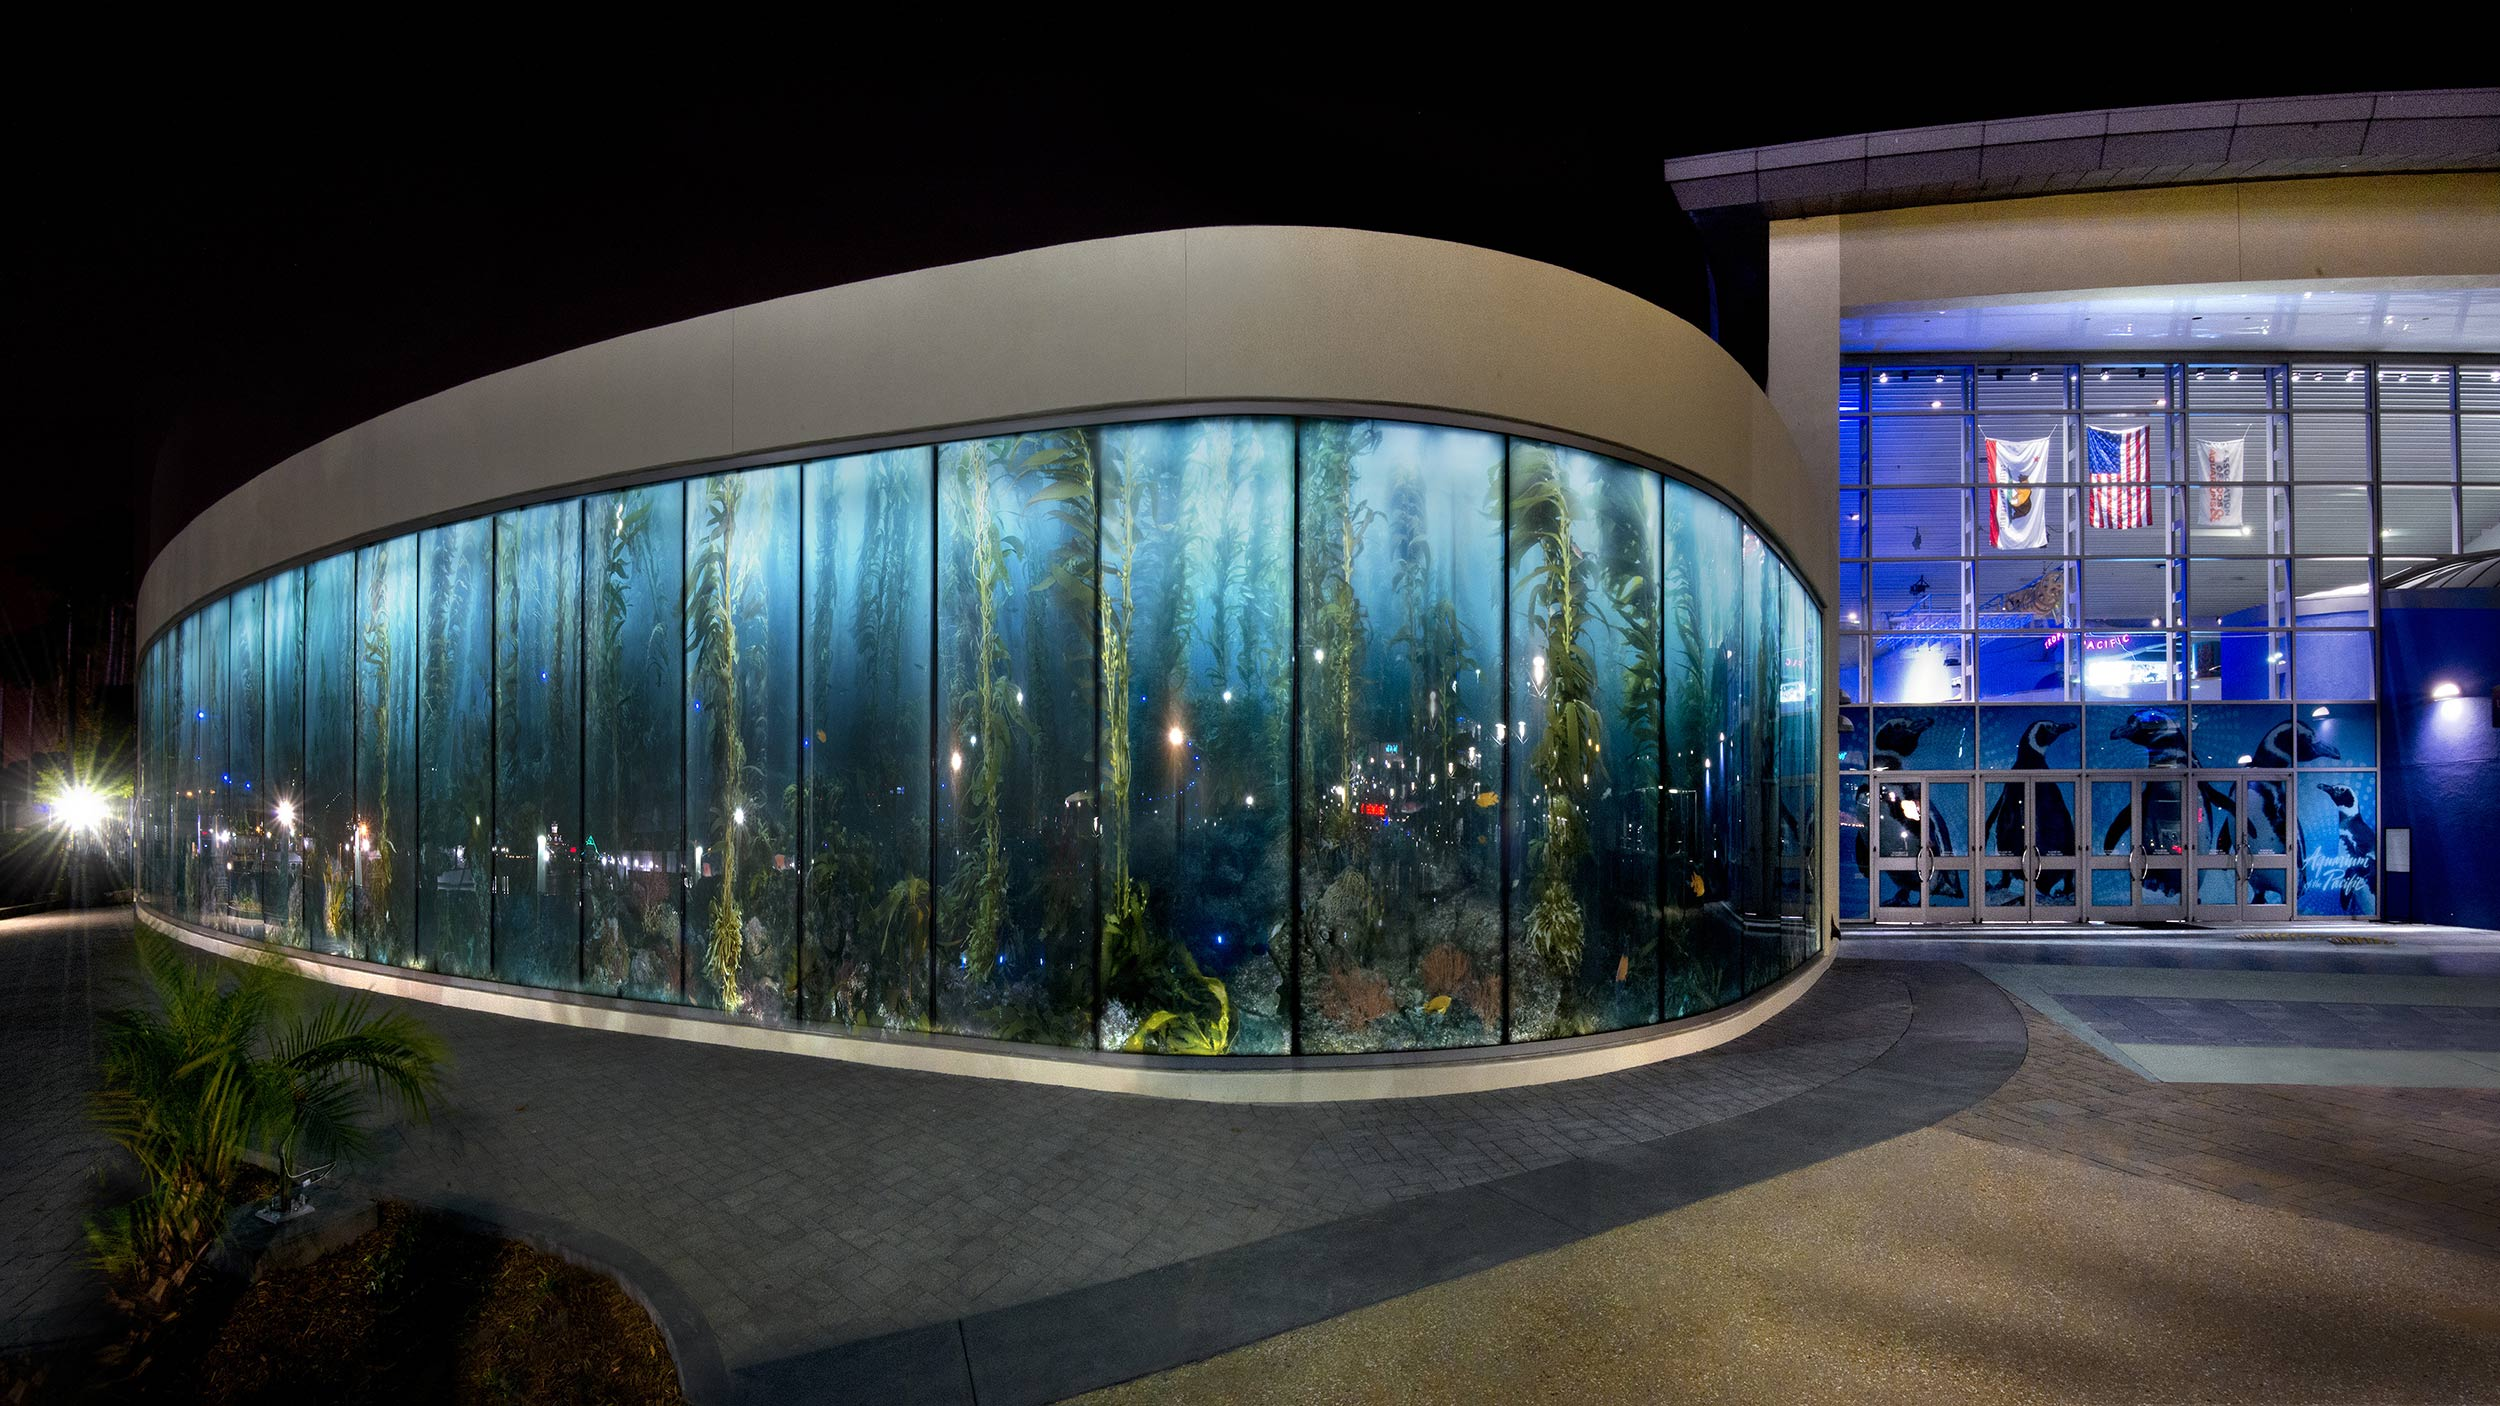 Spectacular 12 Ft High X 125 Wide Kelp Forest Image Reproduced In Gl Windows At The Aquarium Of Pacific Long Beach Ca